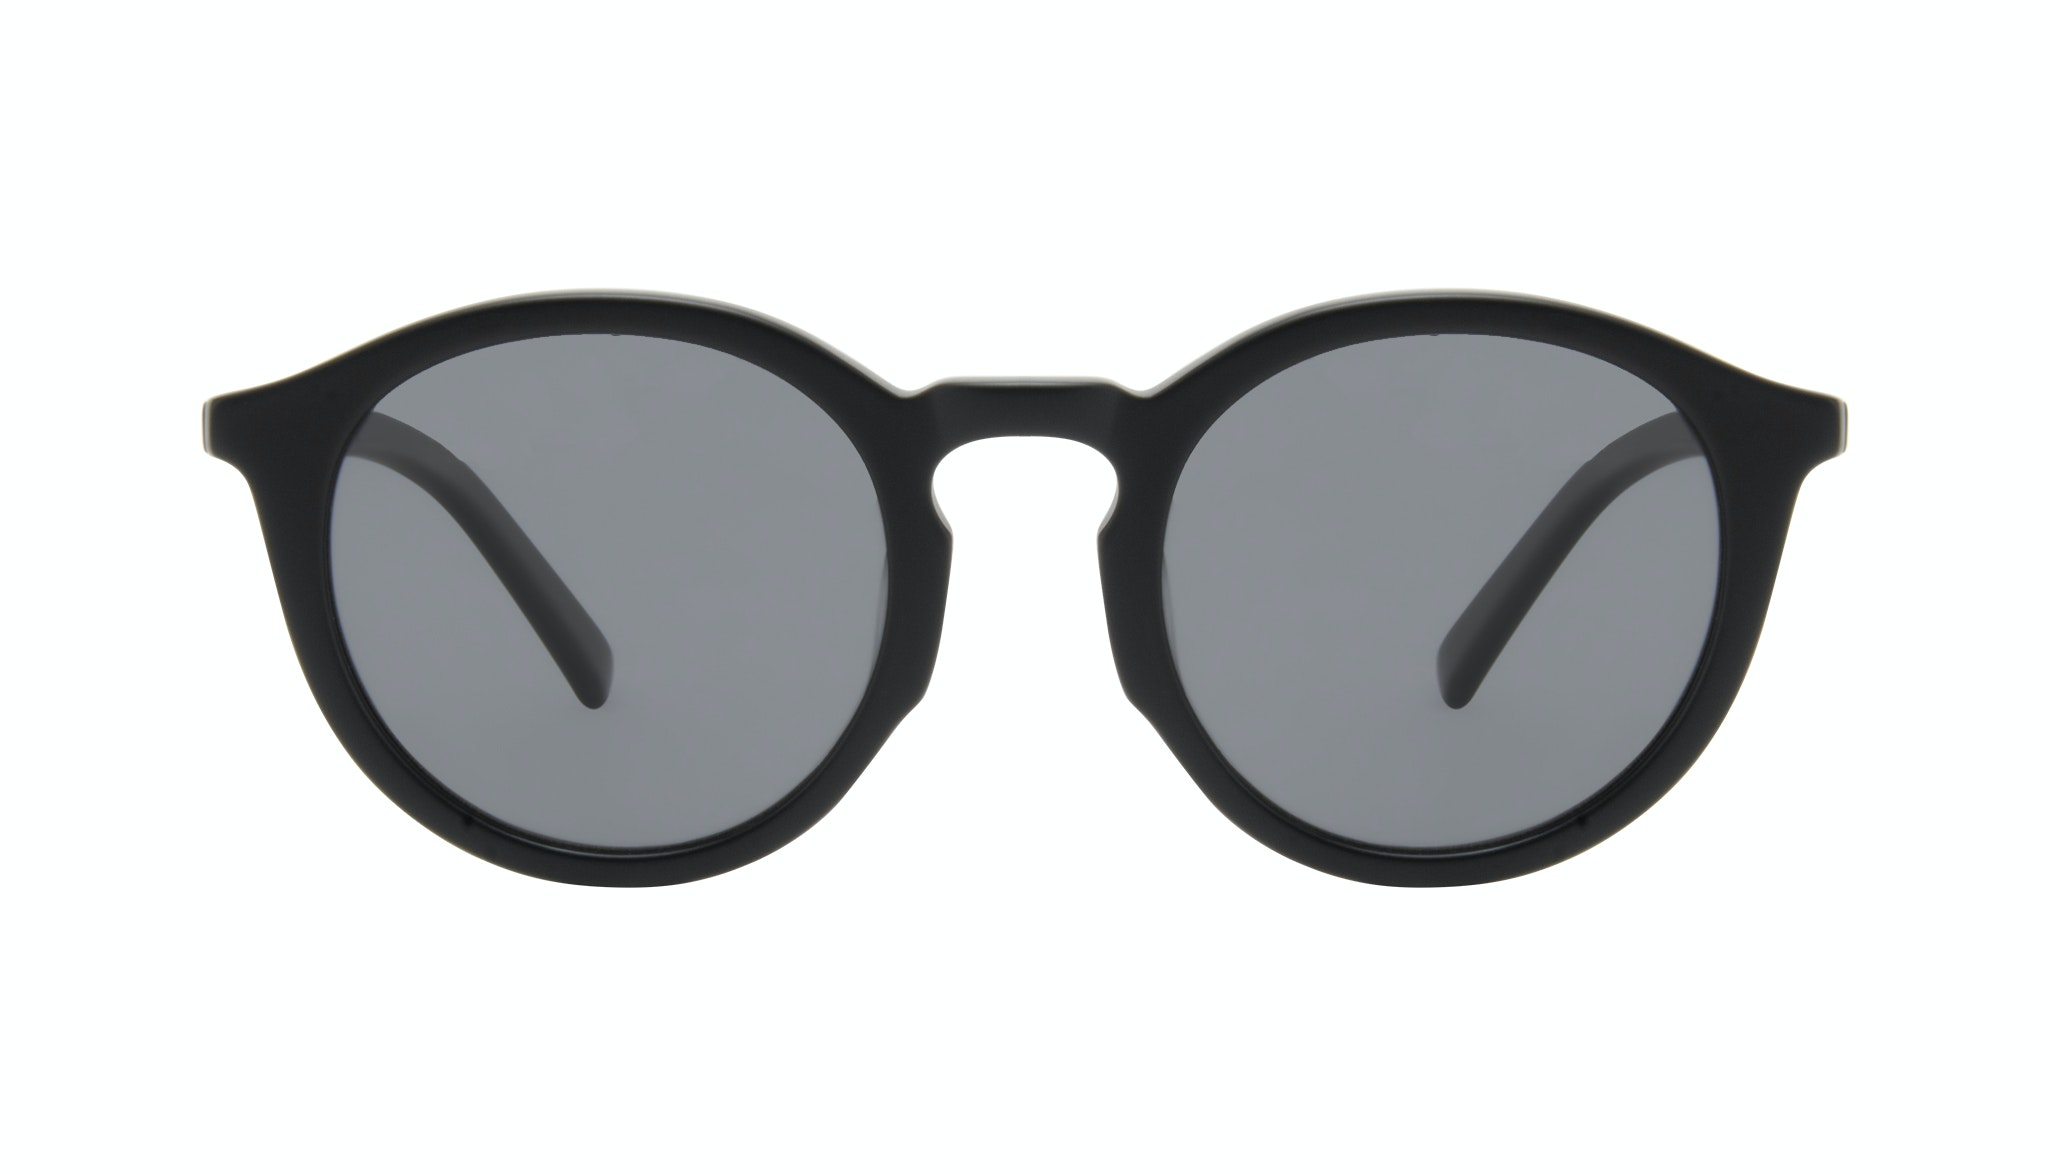 Affordable Fashion Glasses Round Sunglasses Men Thrill Onyx Matte Front